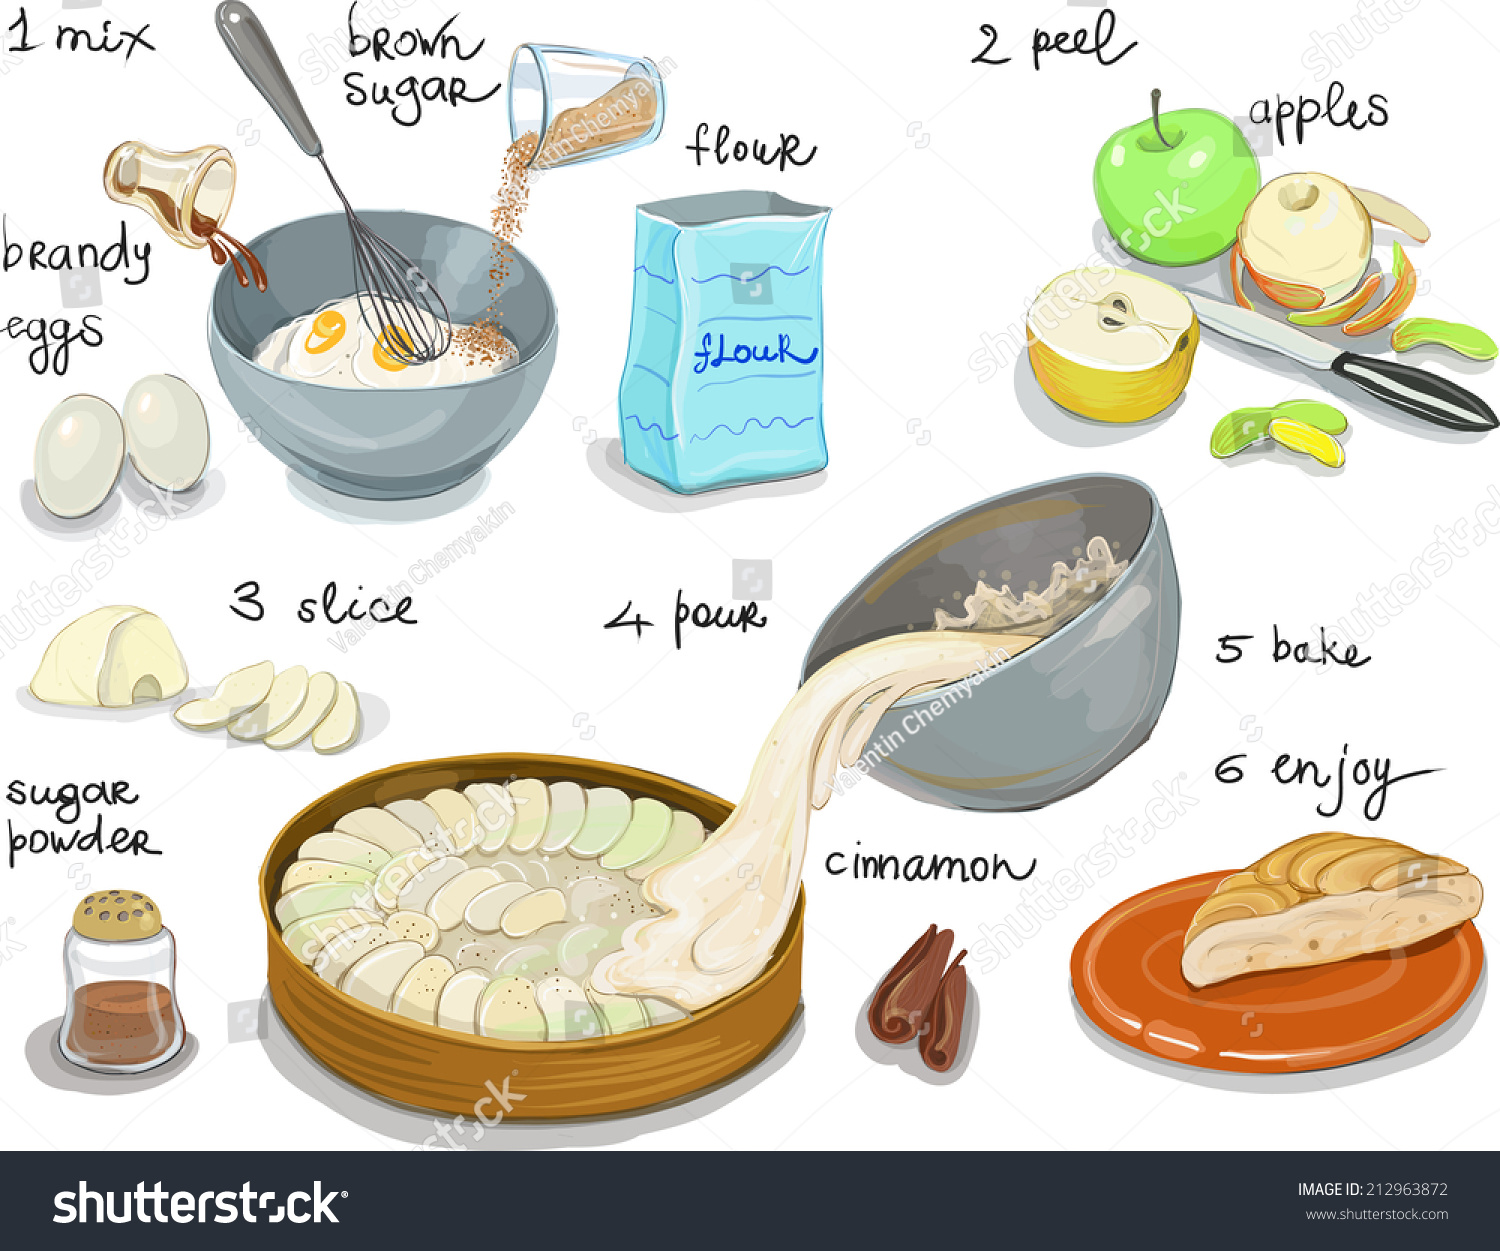 Cake Recipes With Step By Step Images : Apple Pie Step By Step Recipe Stock Vector 212963872 ...